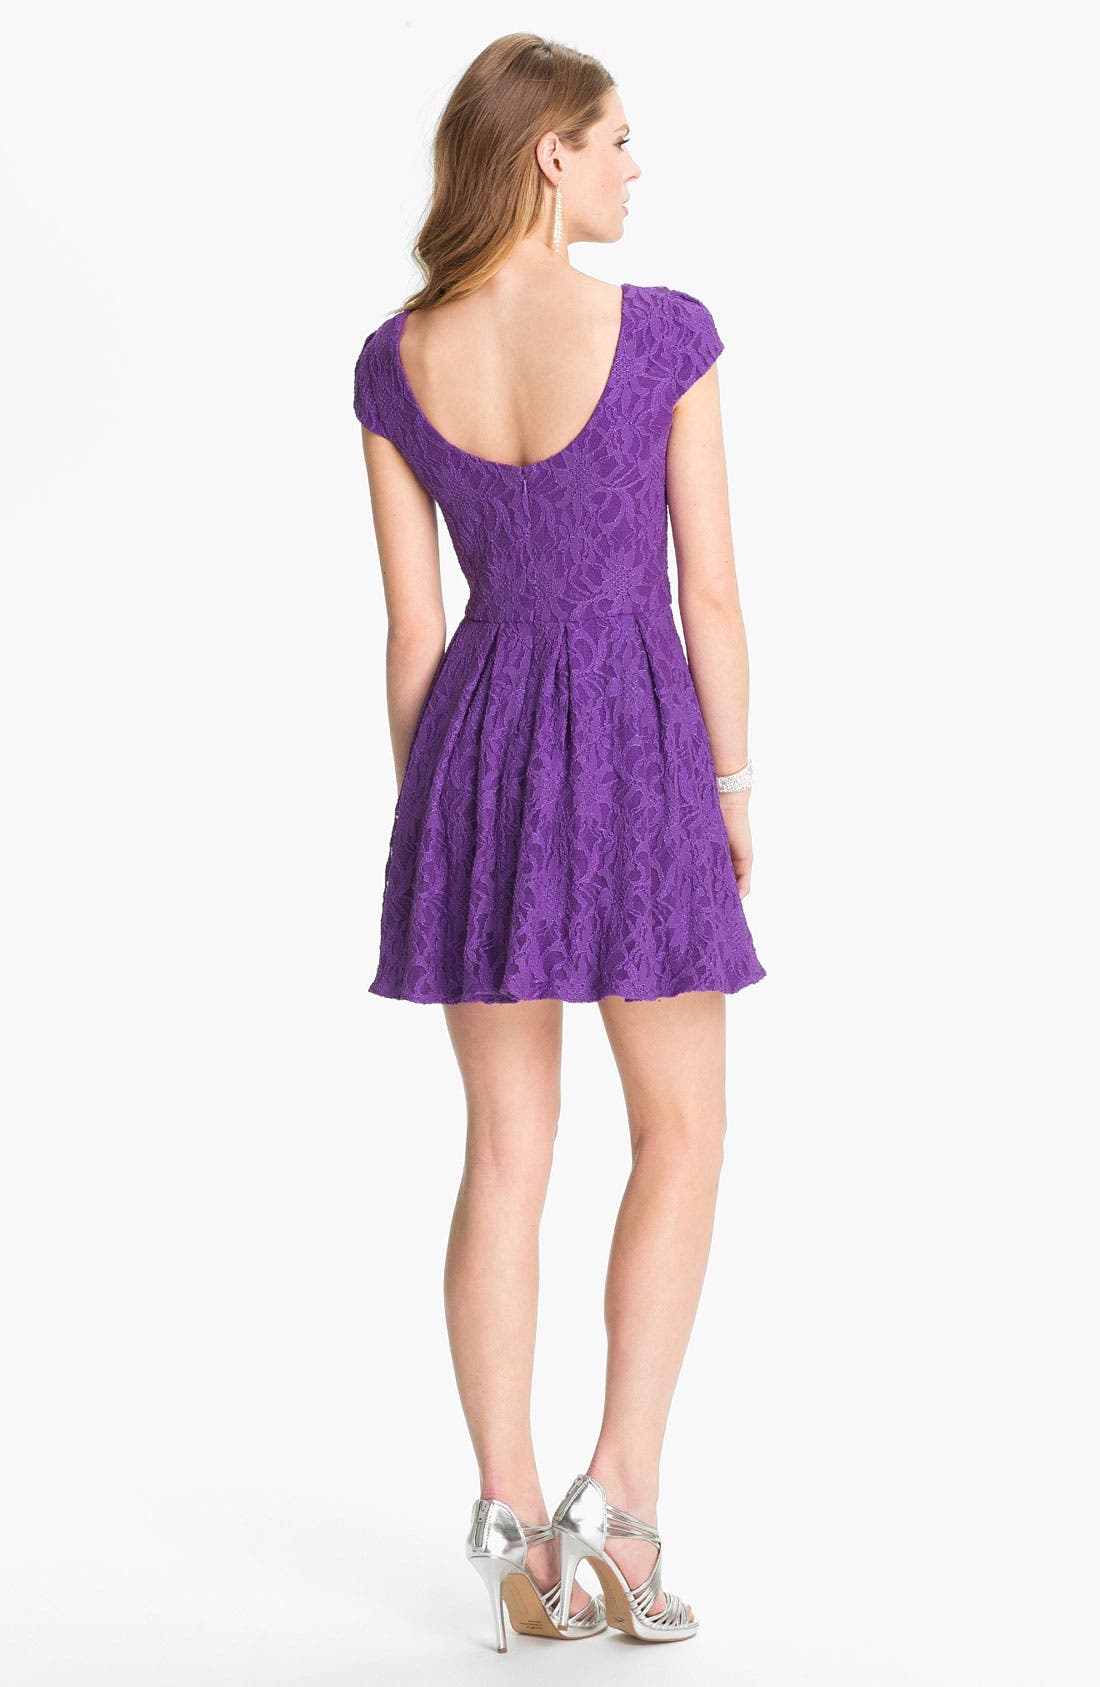 HAILEY BY ADRIANNA PAPELL,                             Lace Fit & Flare Dress,                             Alternate thumbnail 3, color,                             500